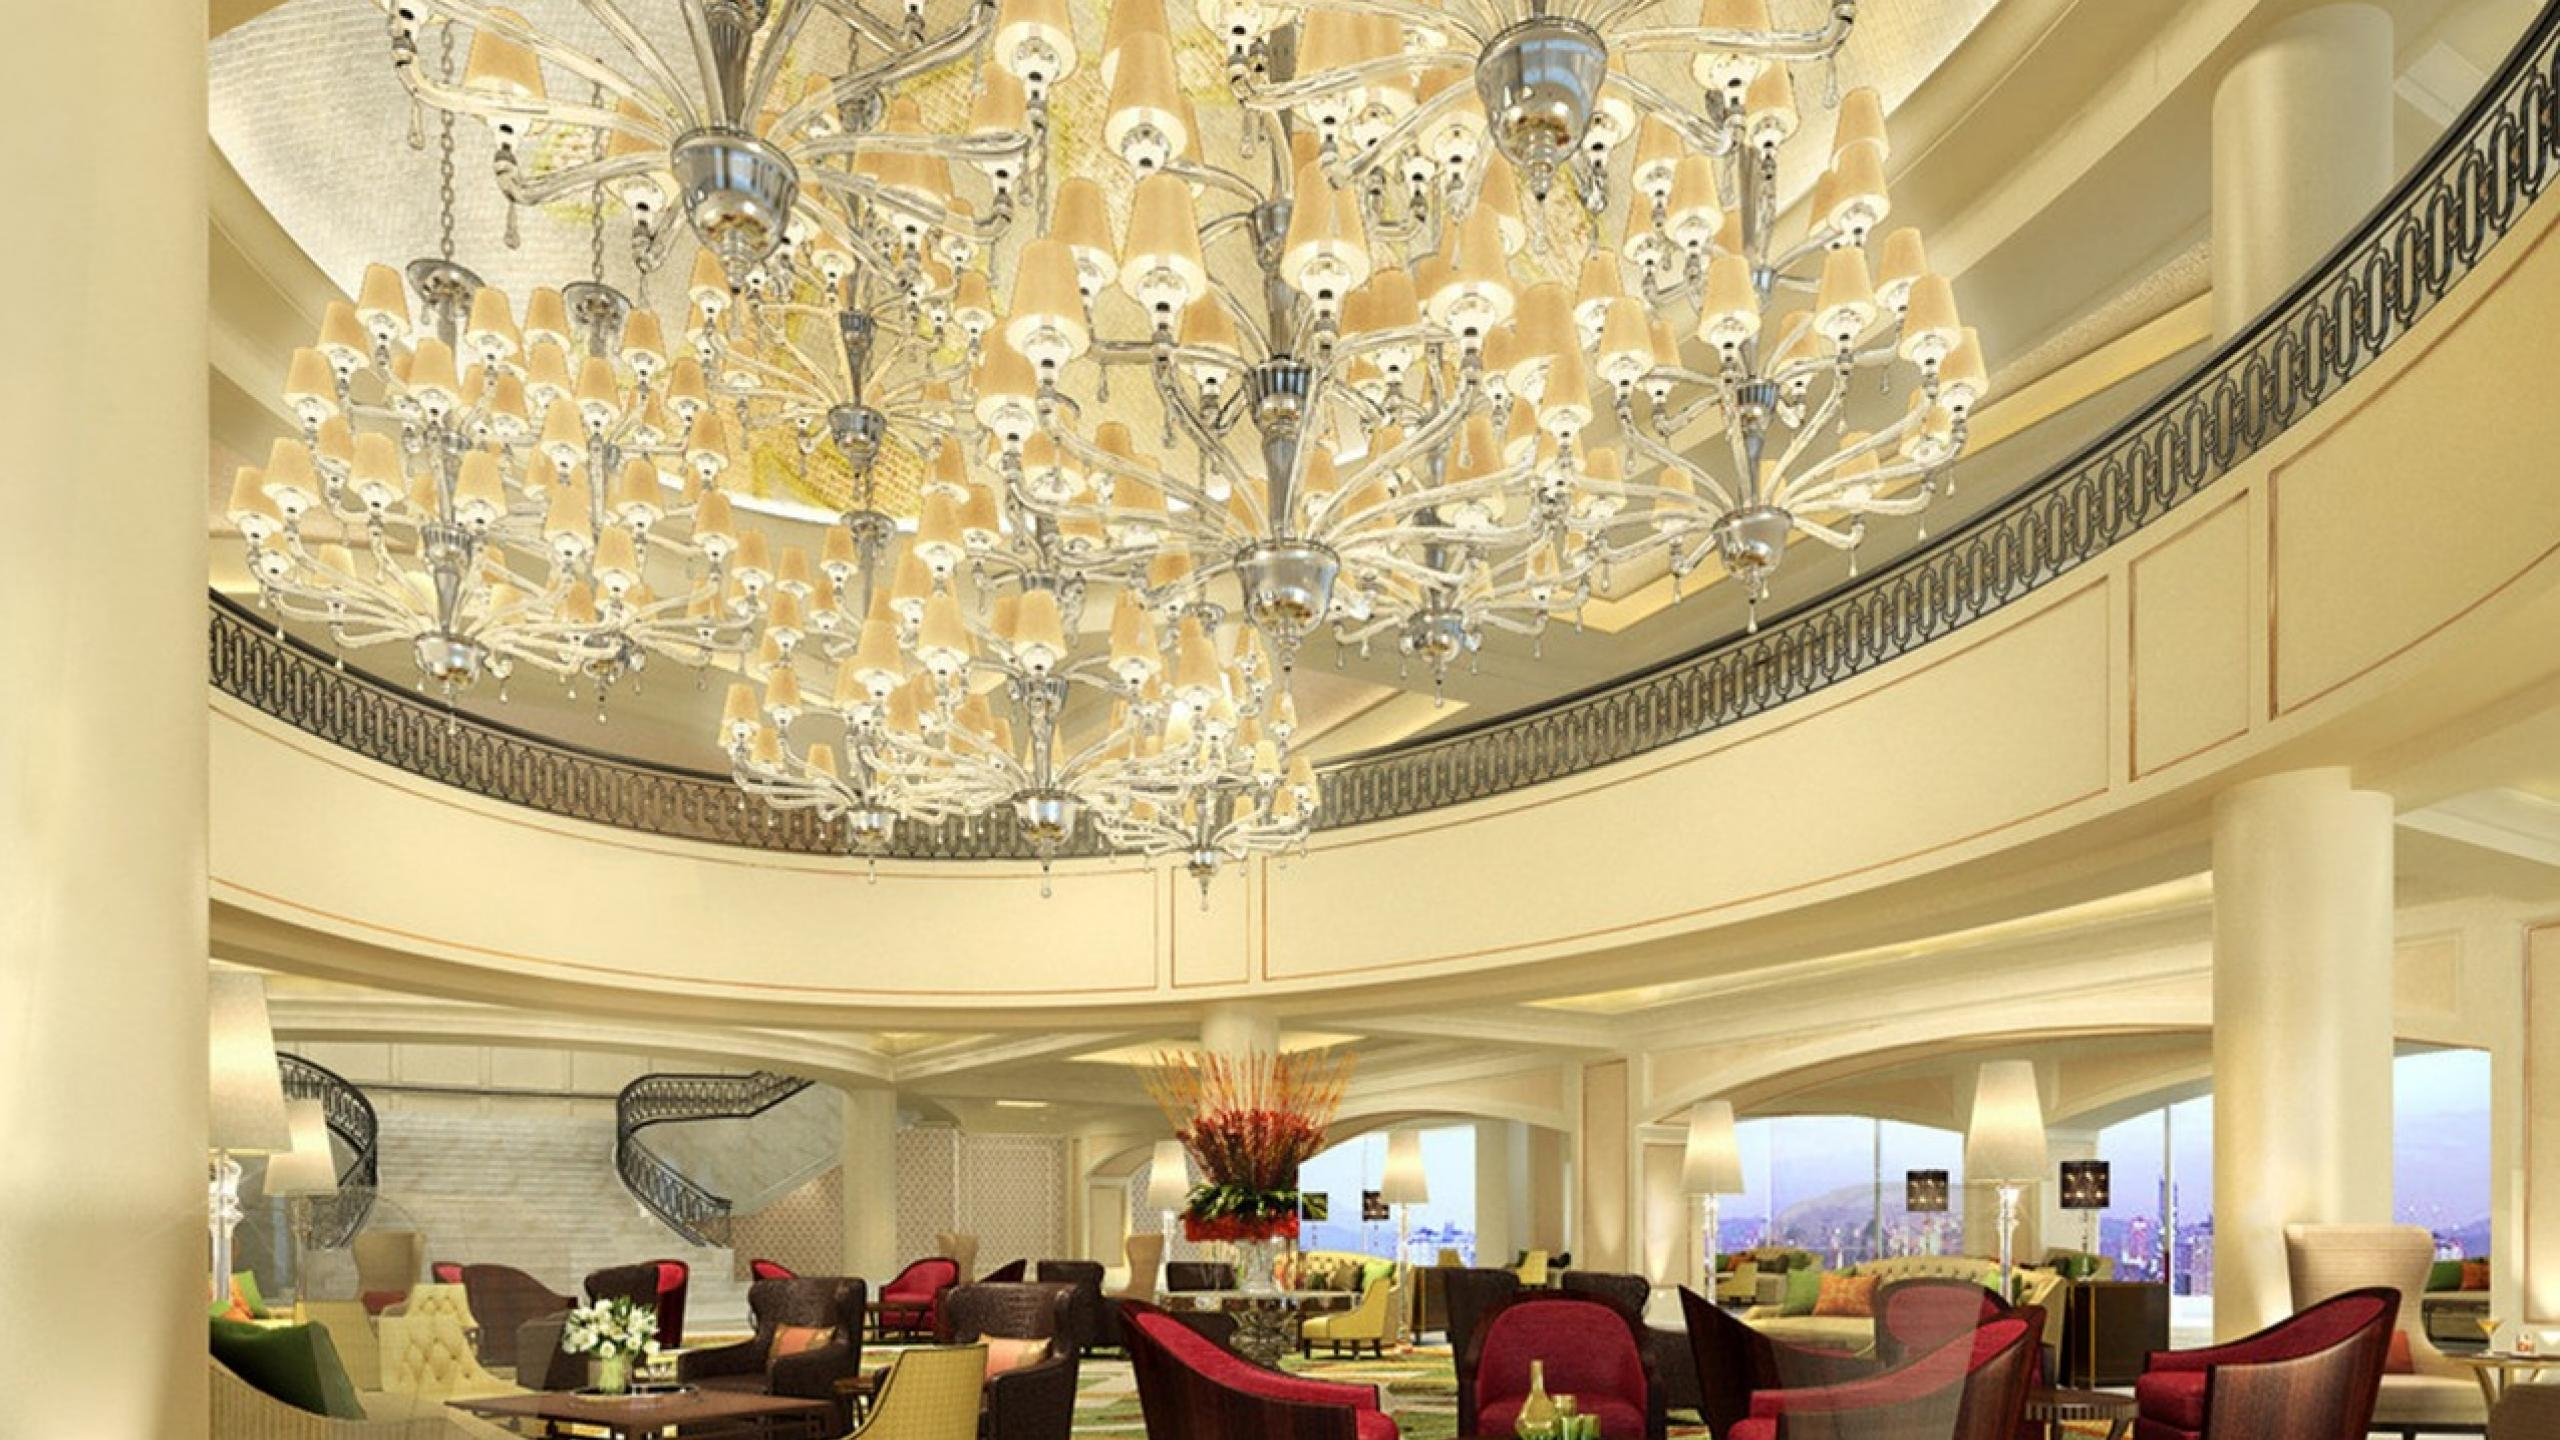 10 Beautiful Chandeliers For A Hotel Design In Hotel Chandelier (Image 1 of 15)